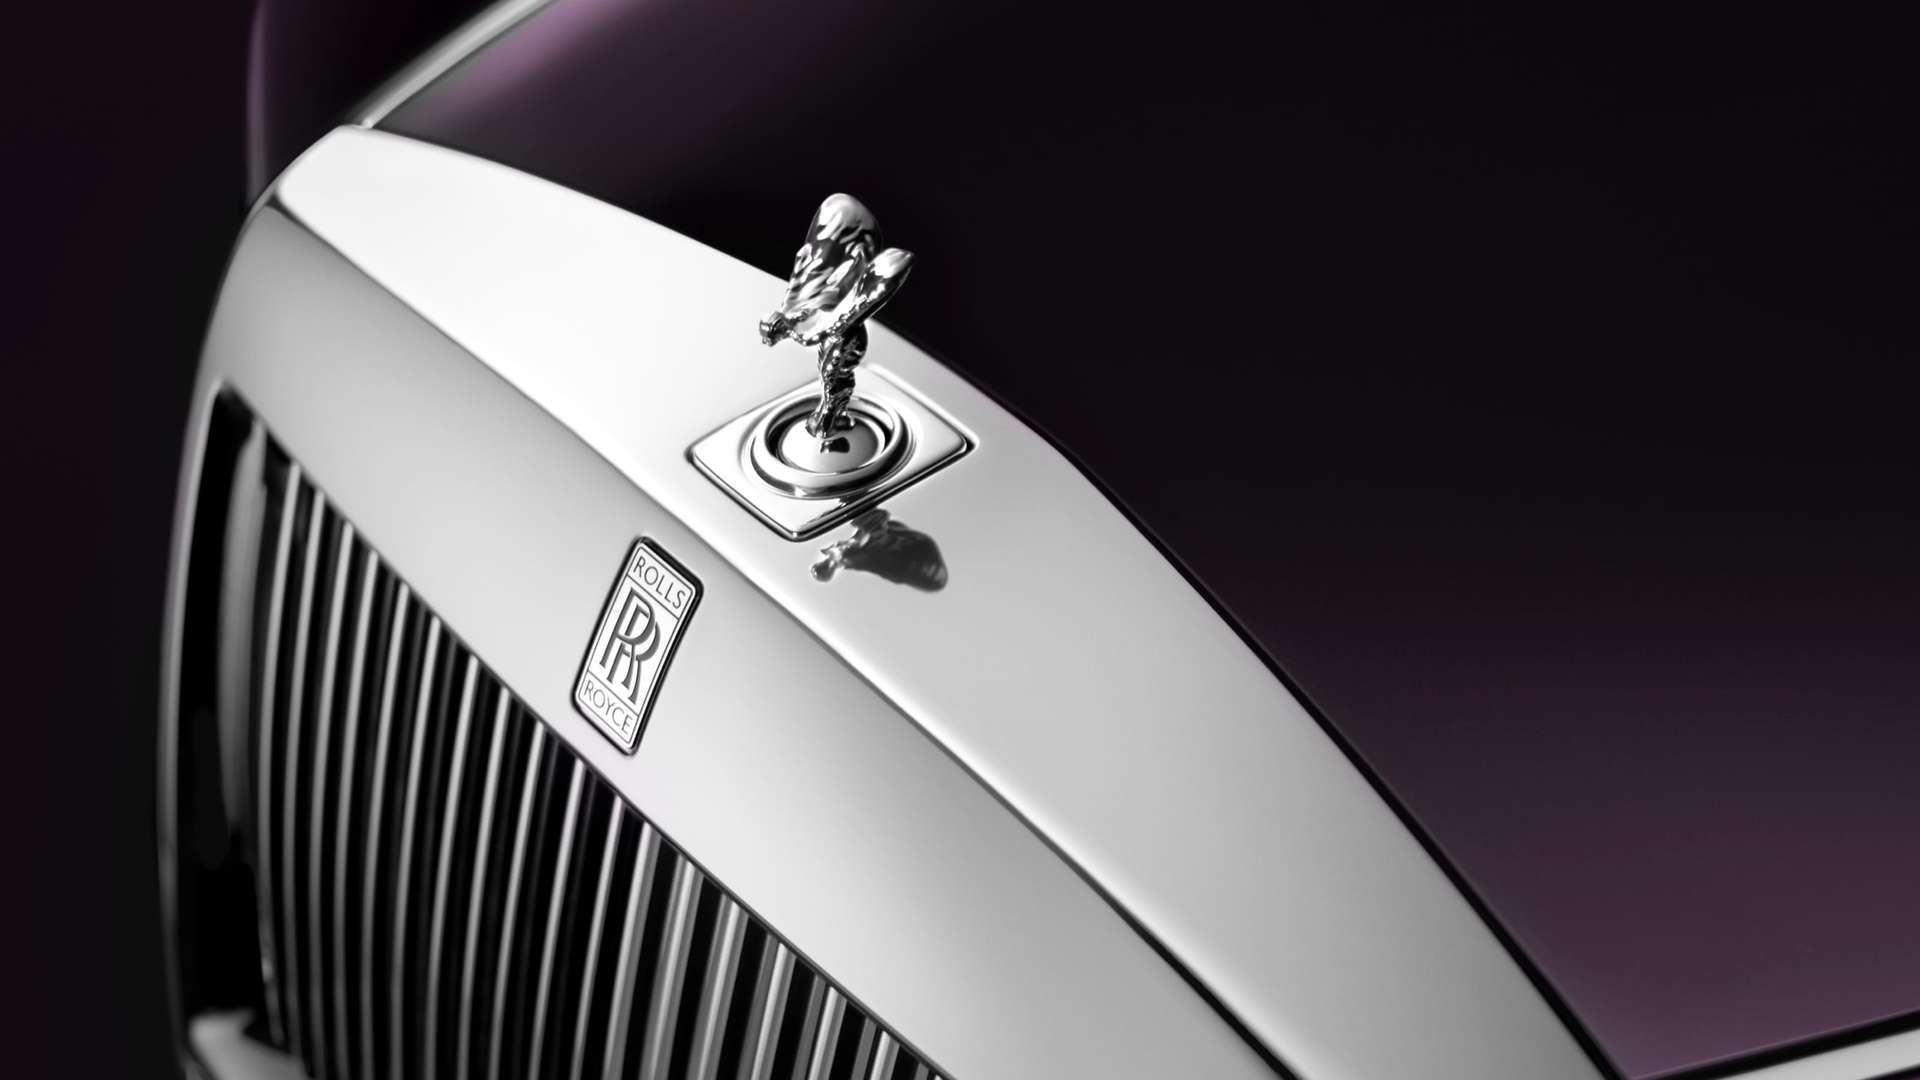 Close up of Spirit of Ecstasy on the Phantom Extended Wheelbase